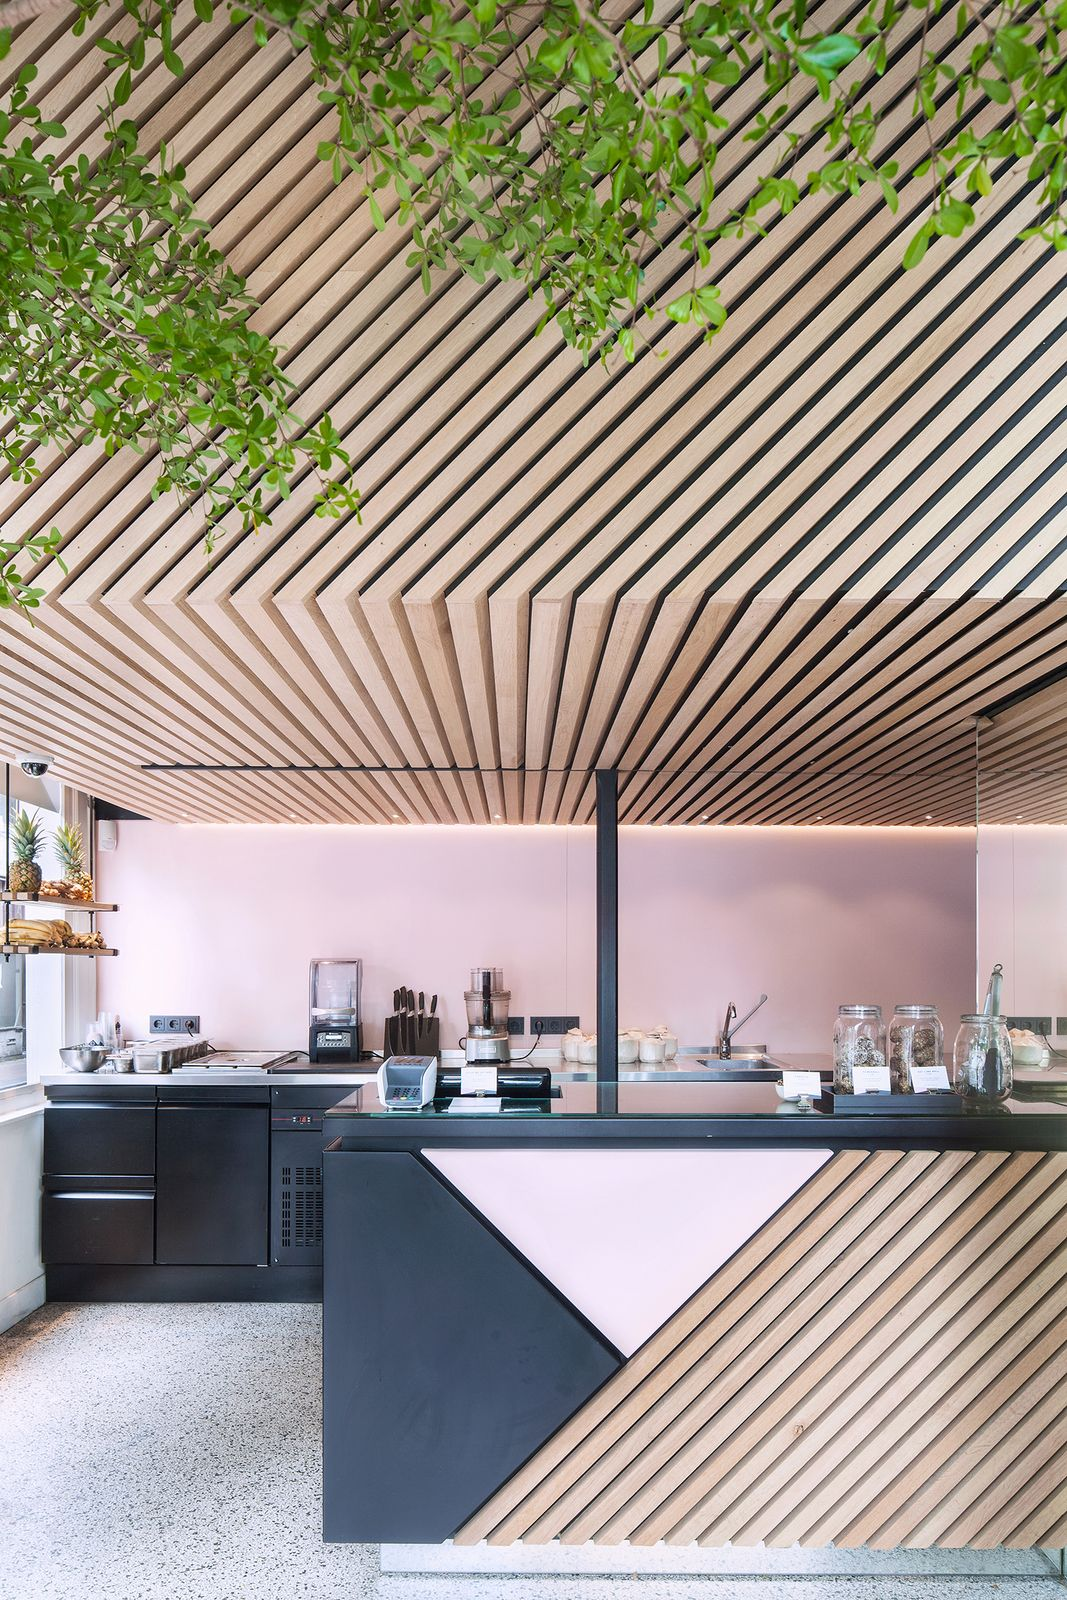 Interior Design Studio Amsterdam a tree grows in amsterdam (with images) | restaurant design